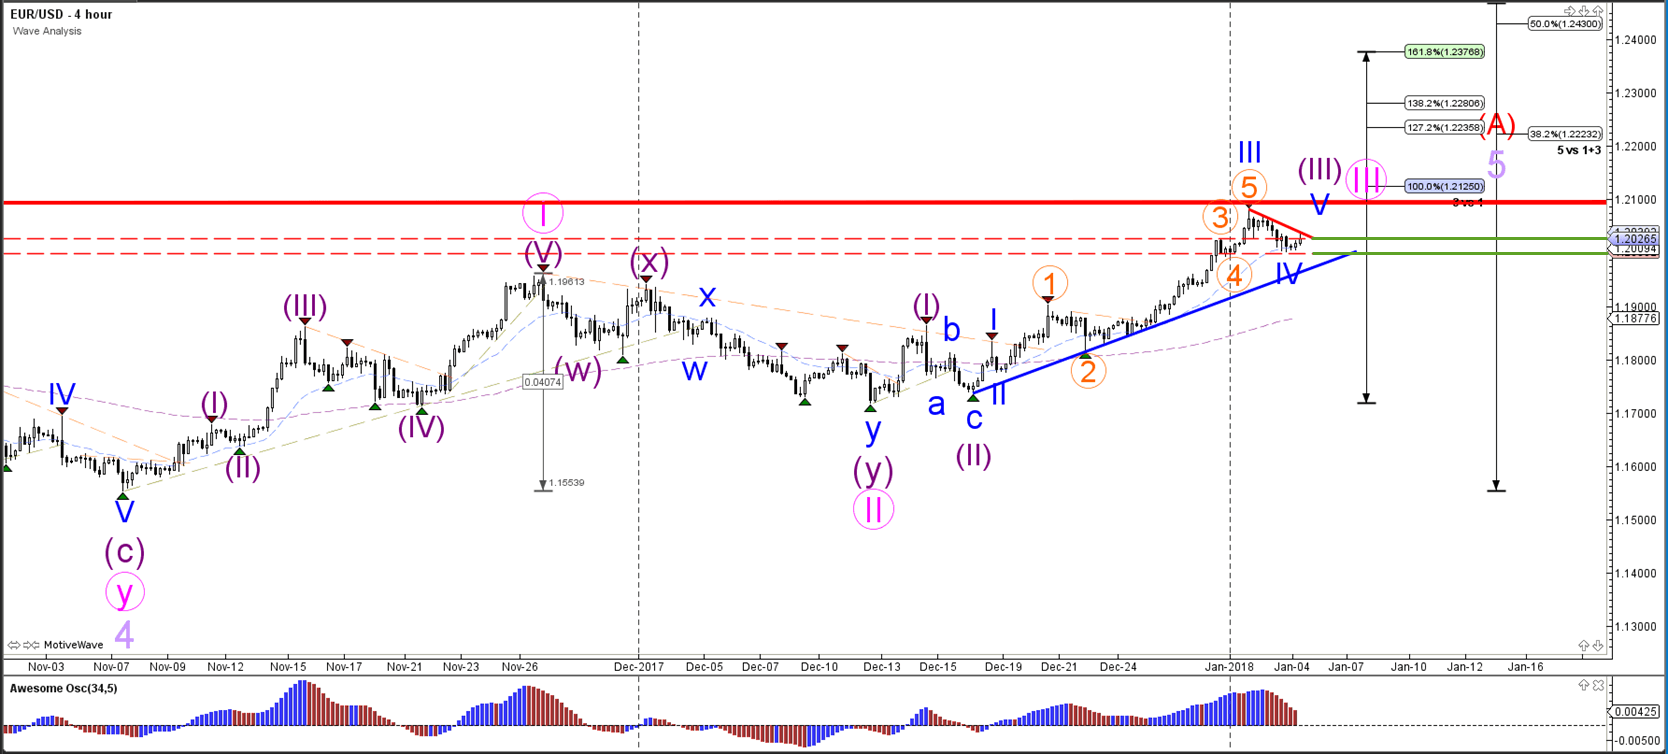 The EUR USD Uptrend Retraced Back To Broken Resistance Dotted Red Lines At 120 Which Has Provided Support For A Bullish Bounce